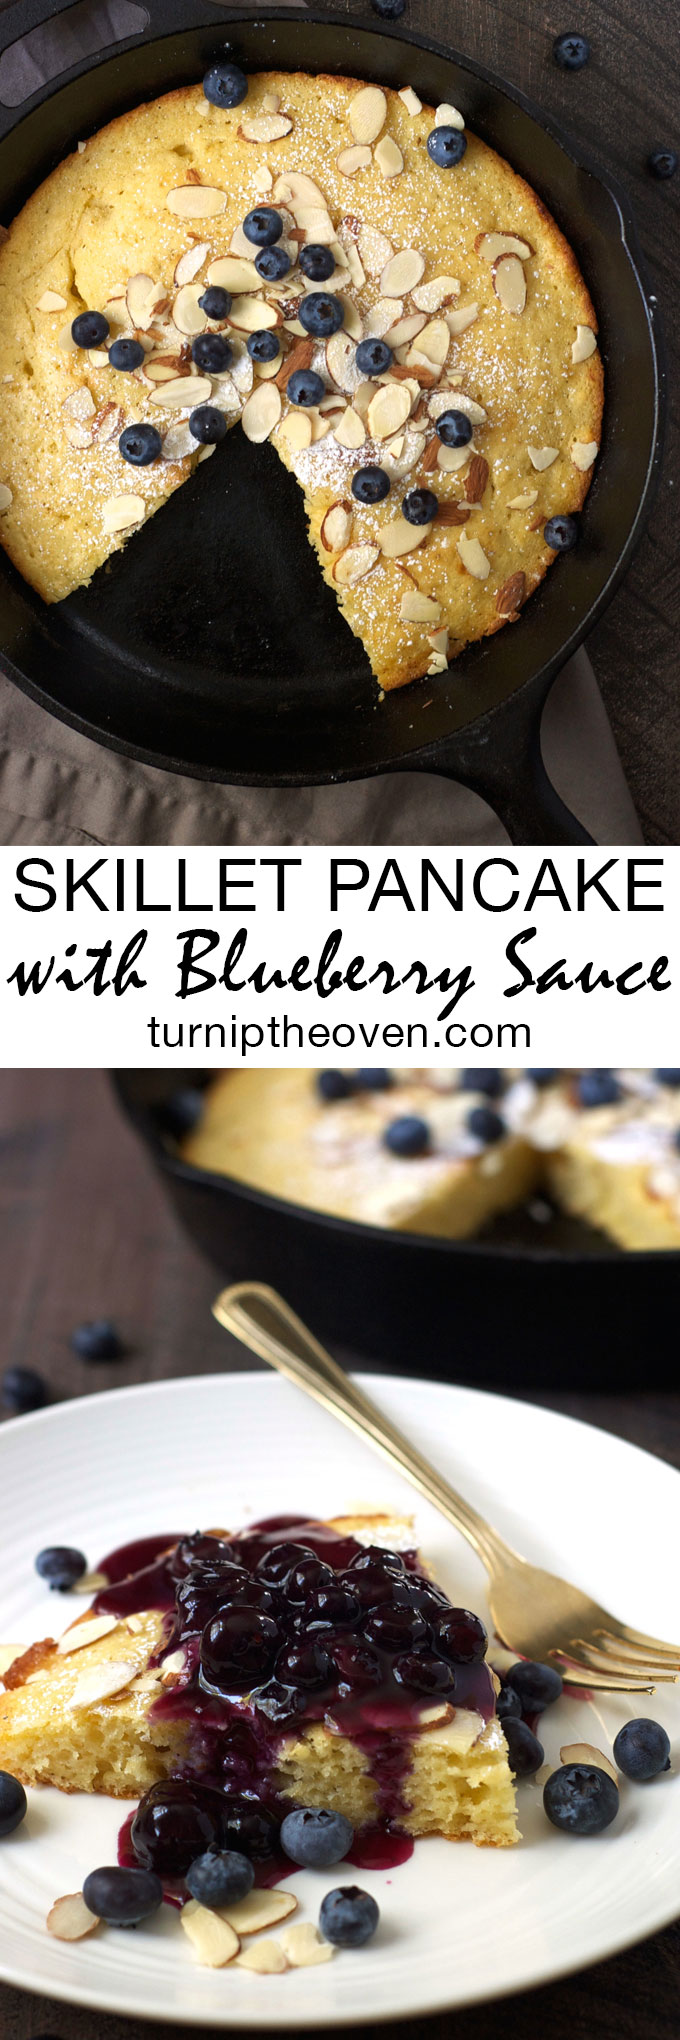 Once you try this easy, wholesome oven-baked skillet pancake, you'll never go back to flipping them on the stovetop again! Homemade maple blueberry sauce is the perfect accompaniment. Is it time for breakfast yet?